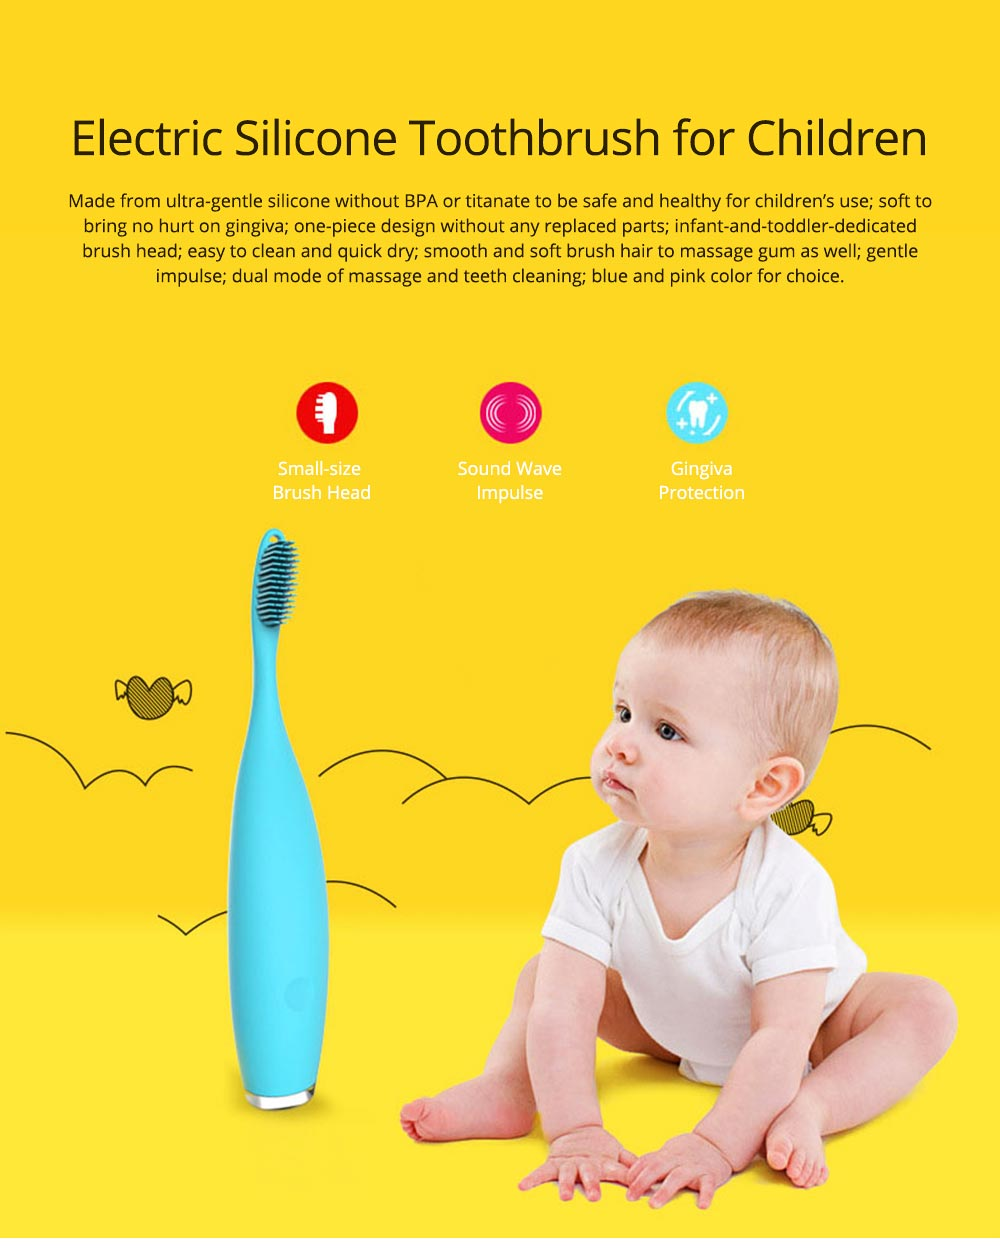 Baby USB Chargeable Silicone Toothbrush for Children Infant, Intelligent Waterproof Ultrasonic Mouth Cavity Cleaning Toothbrush, Electric Brush for Teeth Cleaning 0